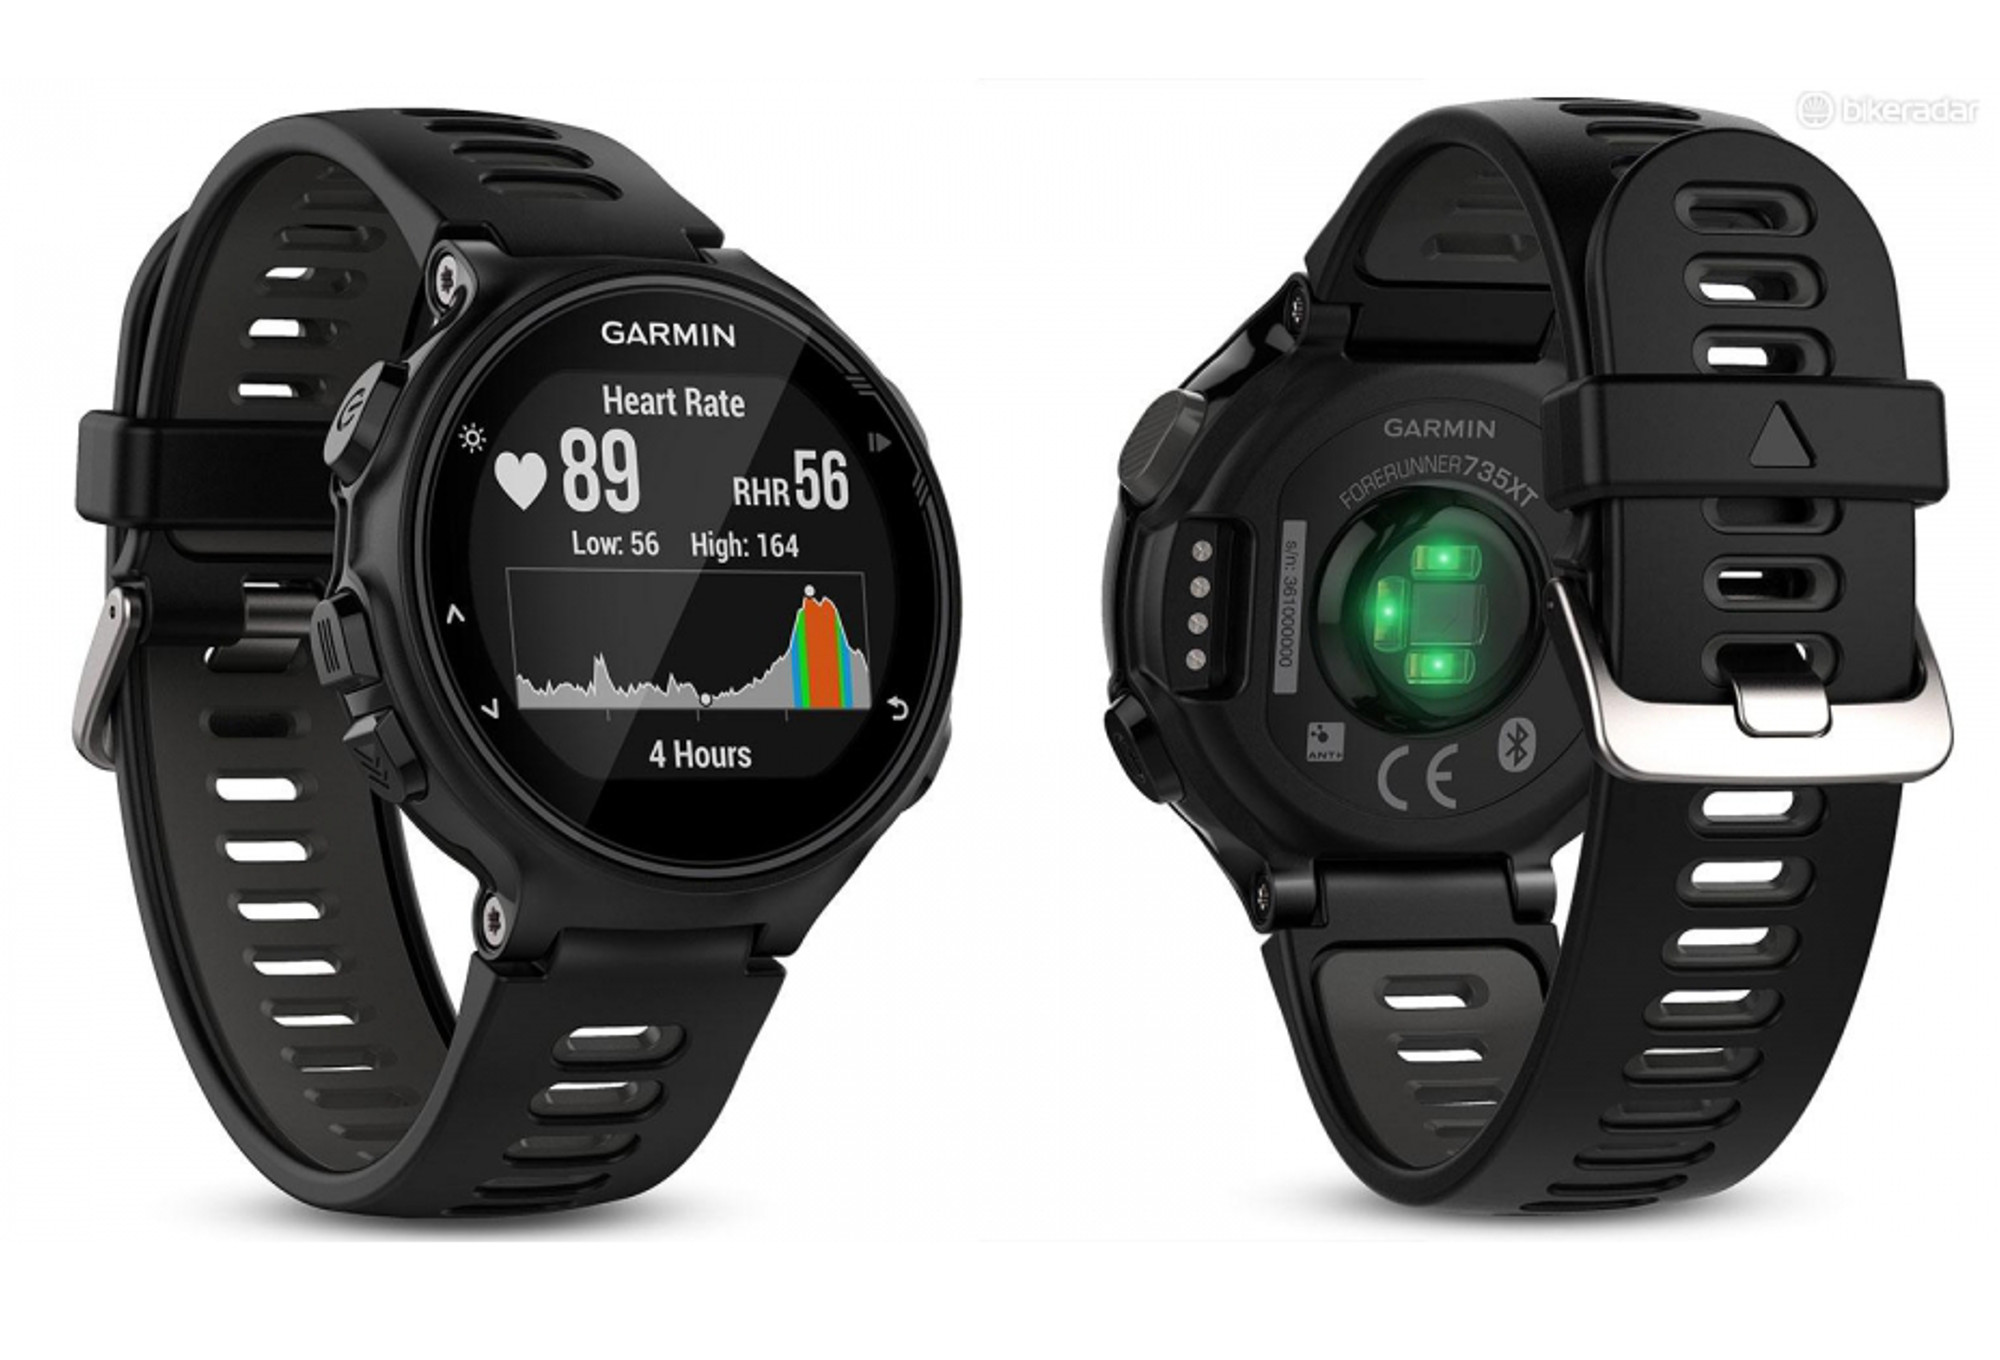 montre gps garmin forerunner 735xt pack tri noir gris. Black Bedroom Furniture Sets. Home Design Ideas